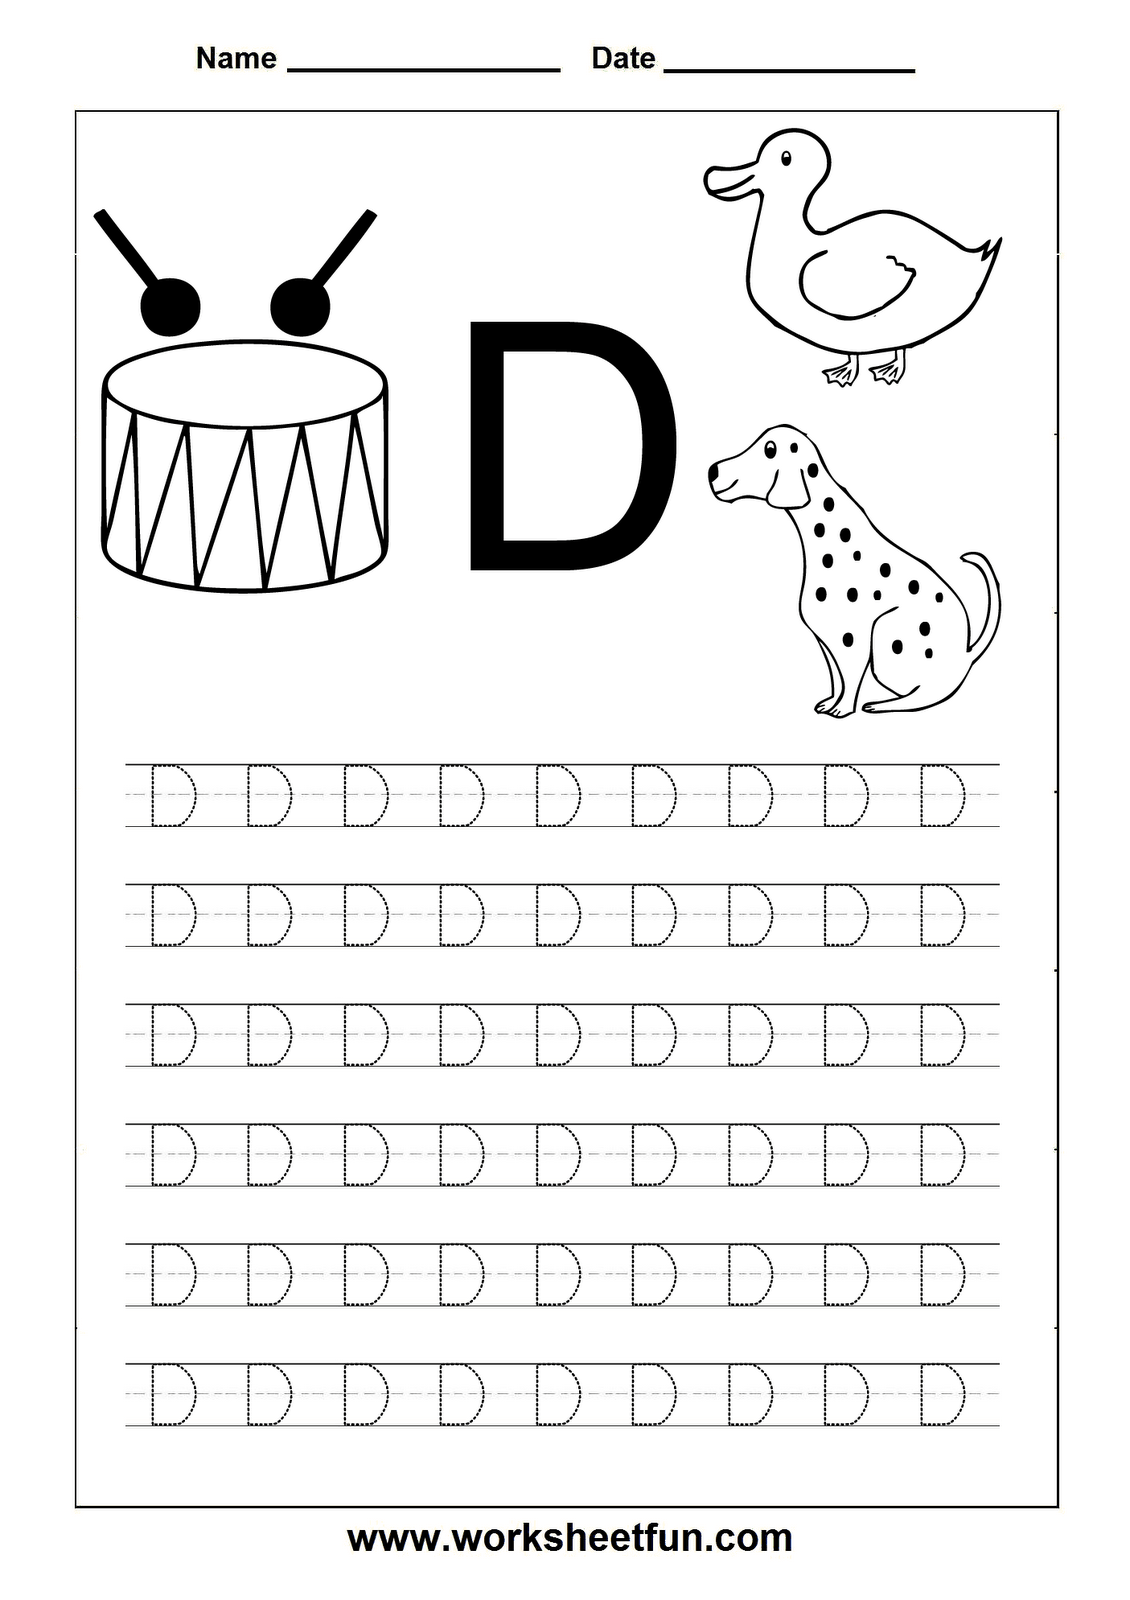 Letter D Worksheets Hd Wallpapers Download Free Letter D